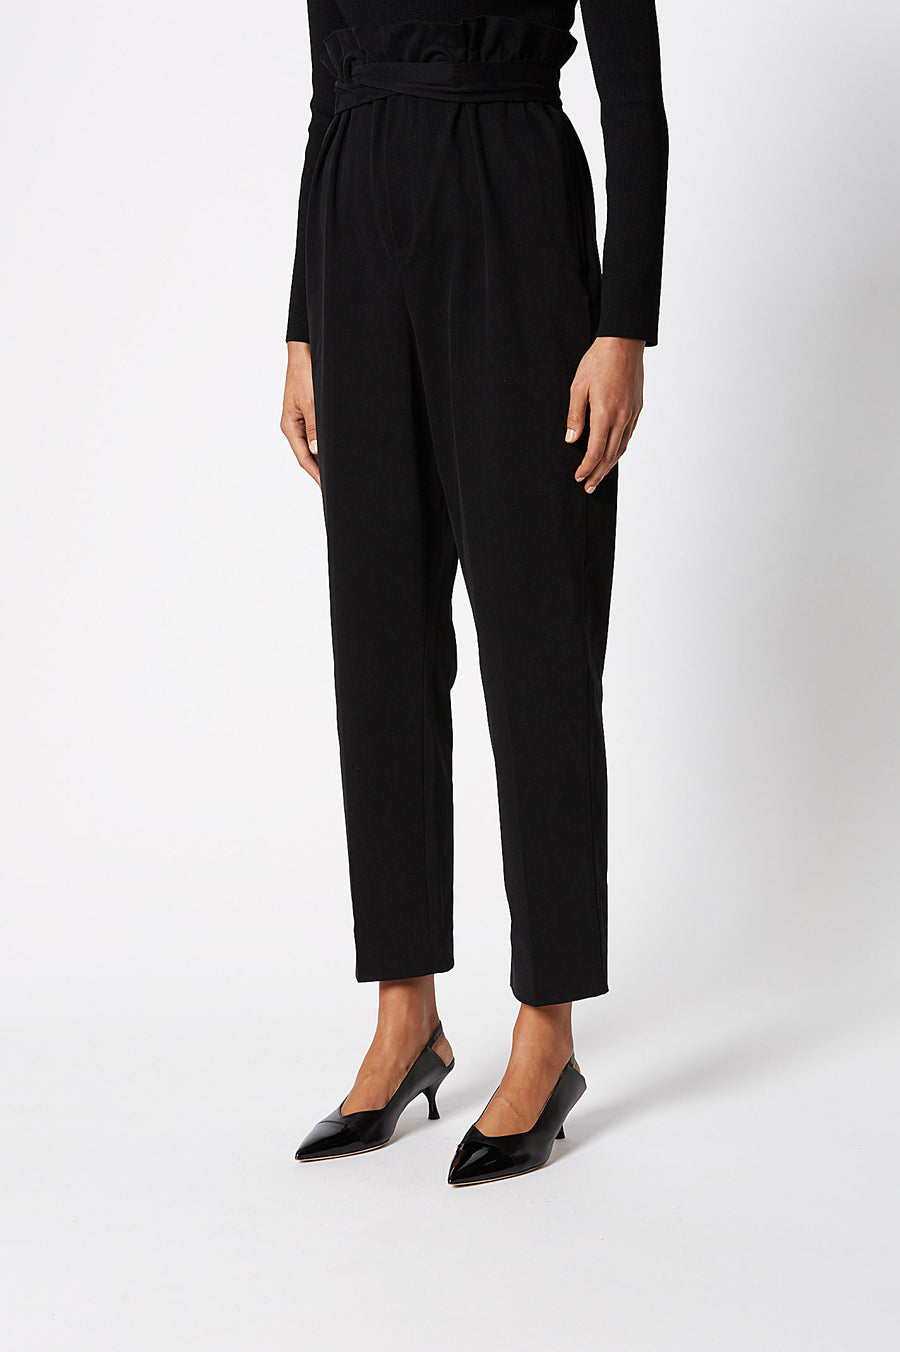 Eyelet Trouser, elastic waistband, high waist, relaxed through hip and thigh, straight leg, Color Black